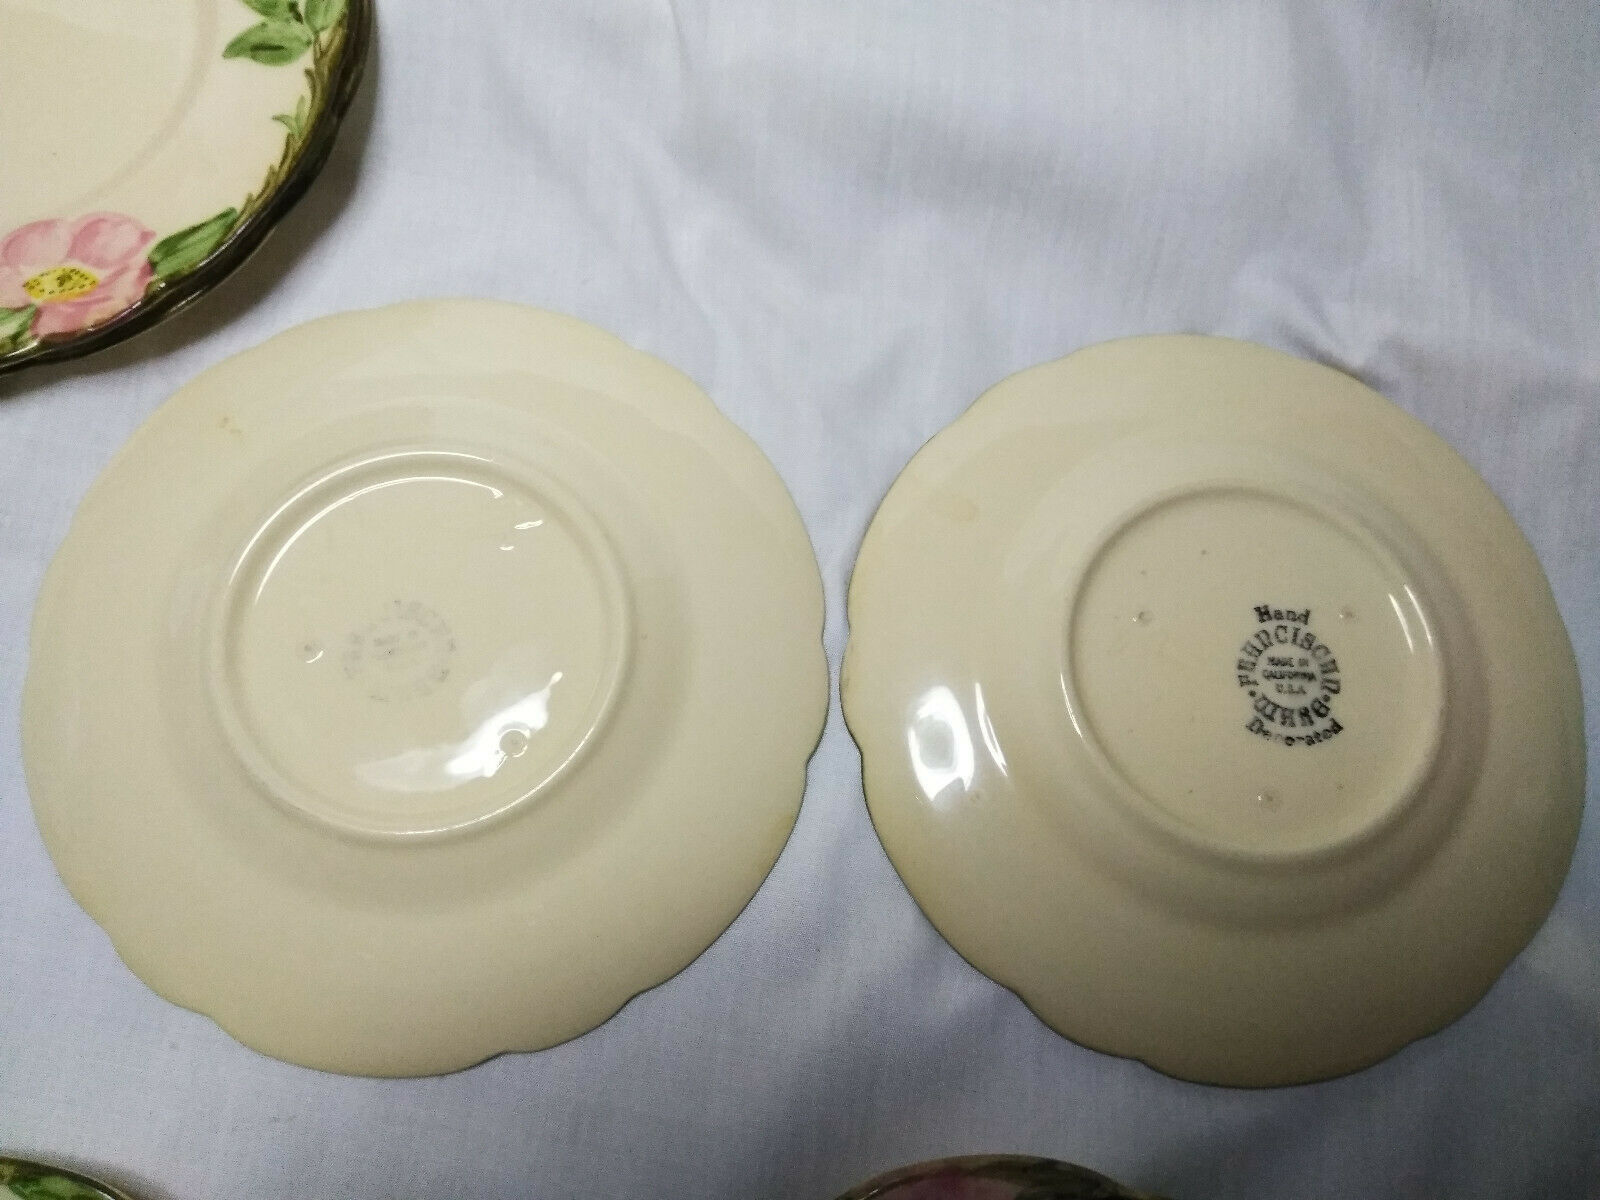 Vintage Franciscan China Desert Rose Set of 6-6.5 inch Cheese/Dessert  Plates A